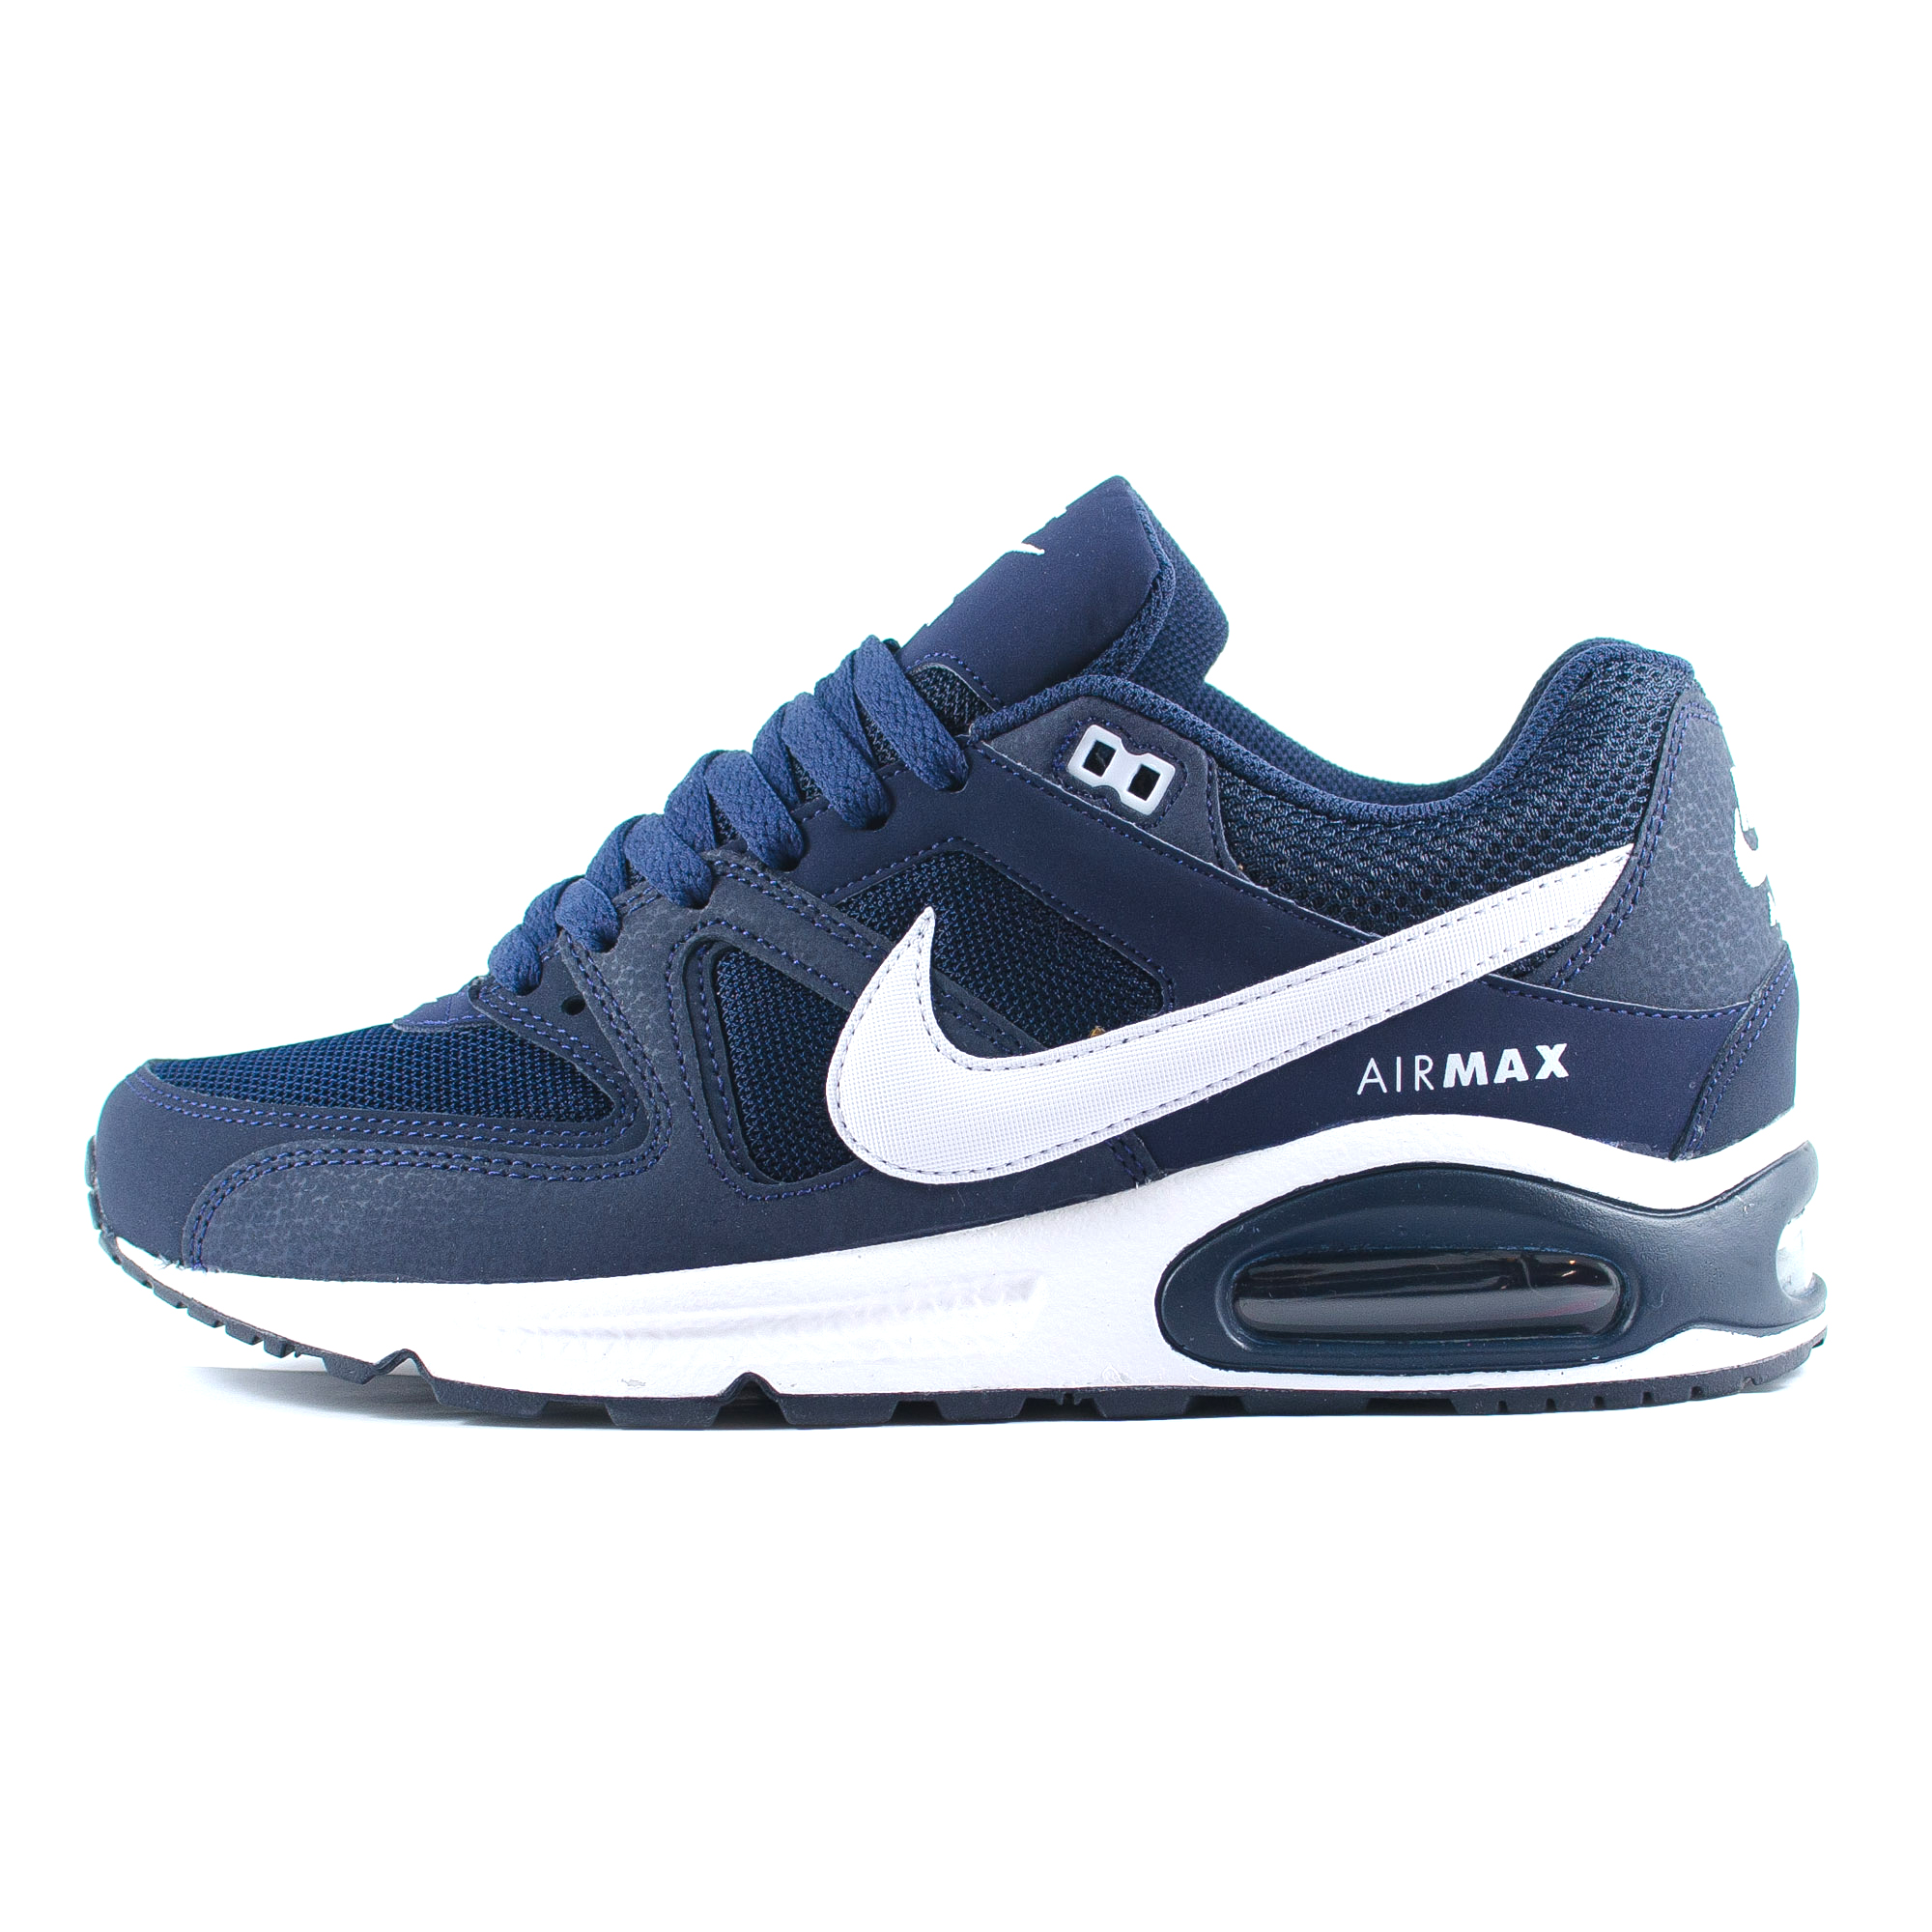 d3f5078c55122 nike air max command trainers navy blue